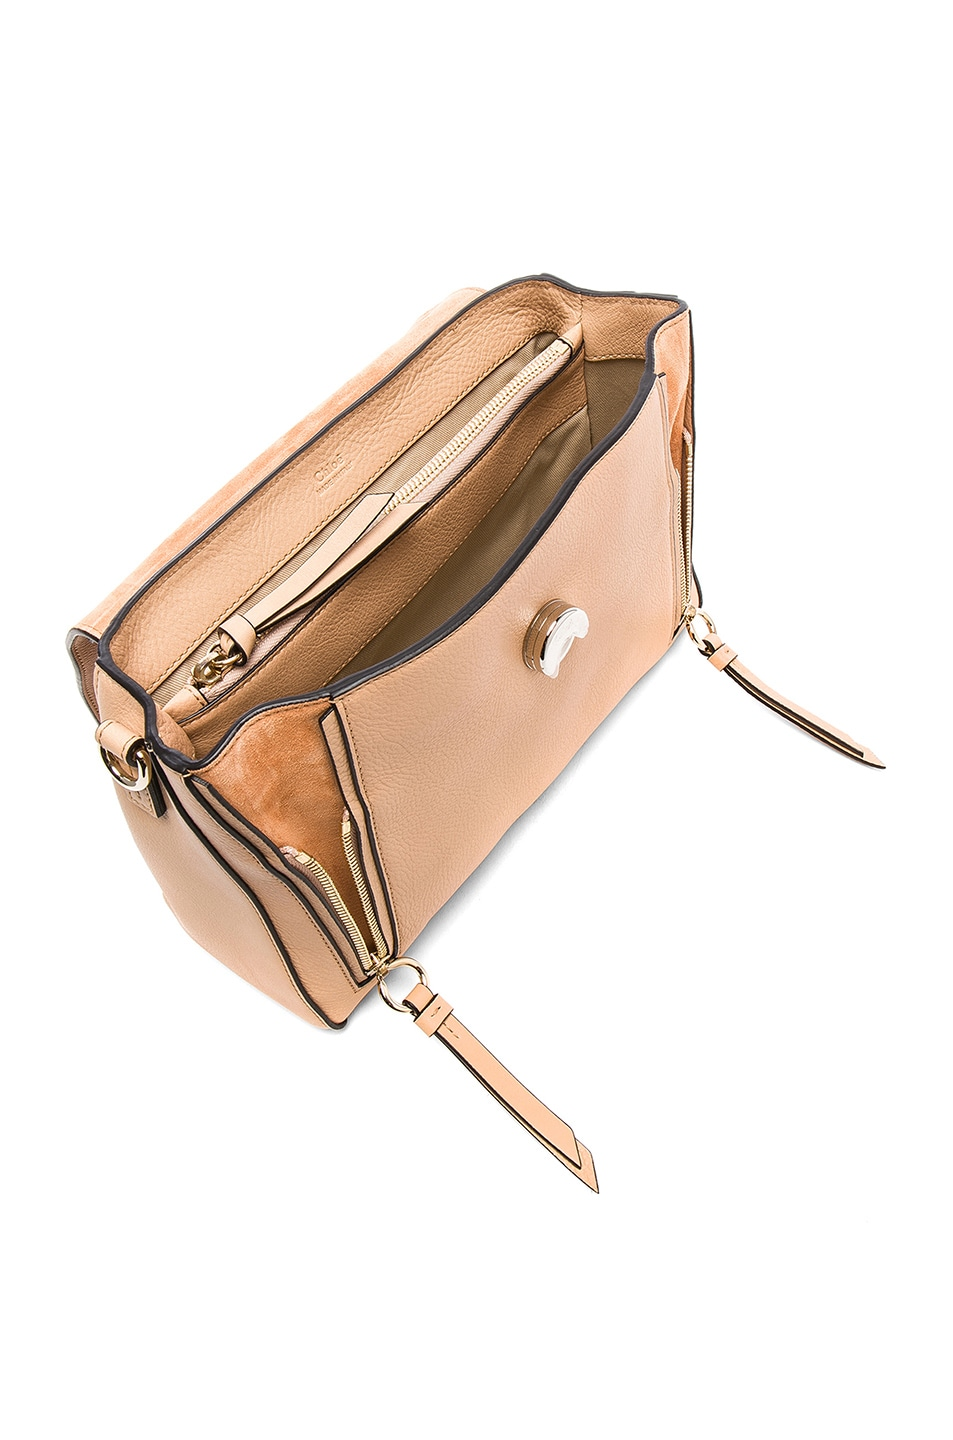 Image 5 of Chloe Small Faye Calfskin & Suede Day Bag in Blush Nude